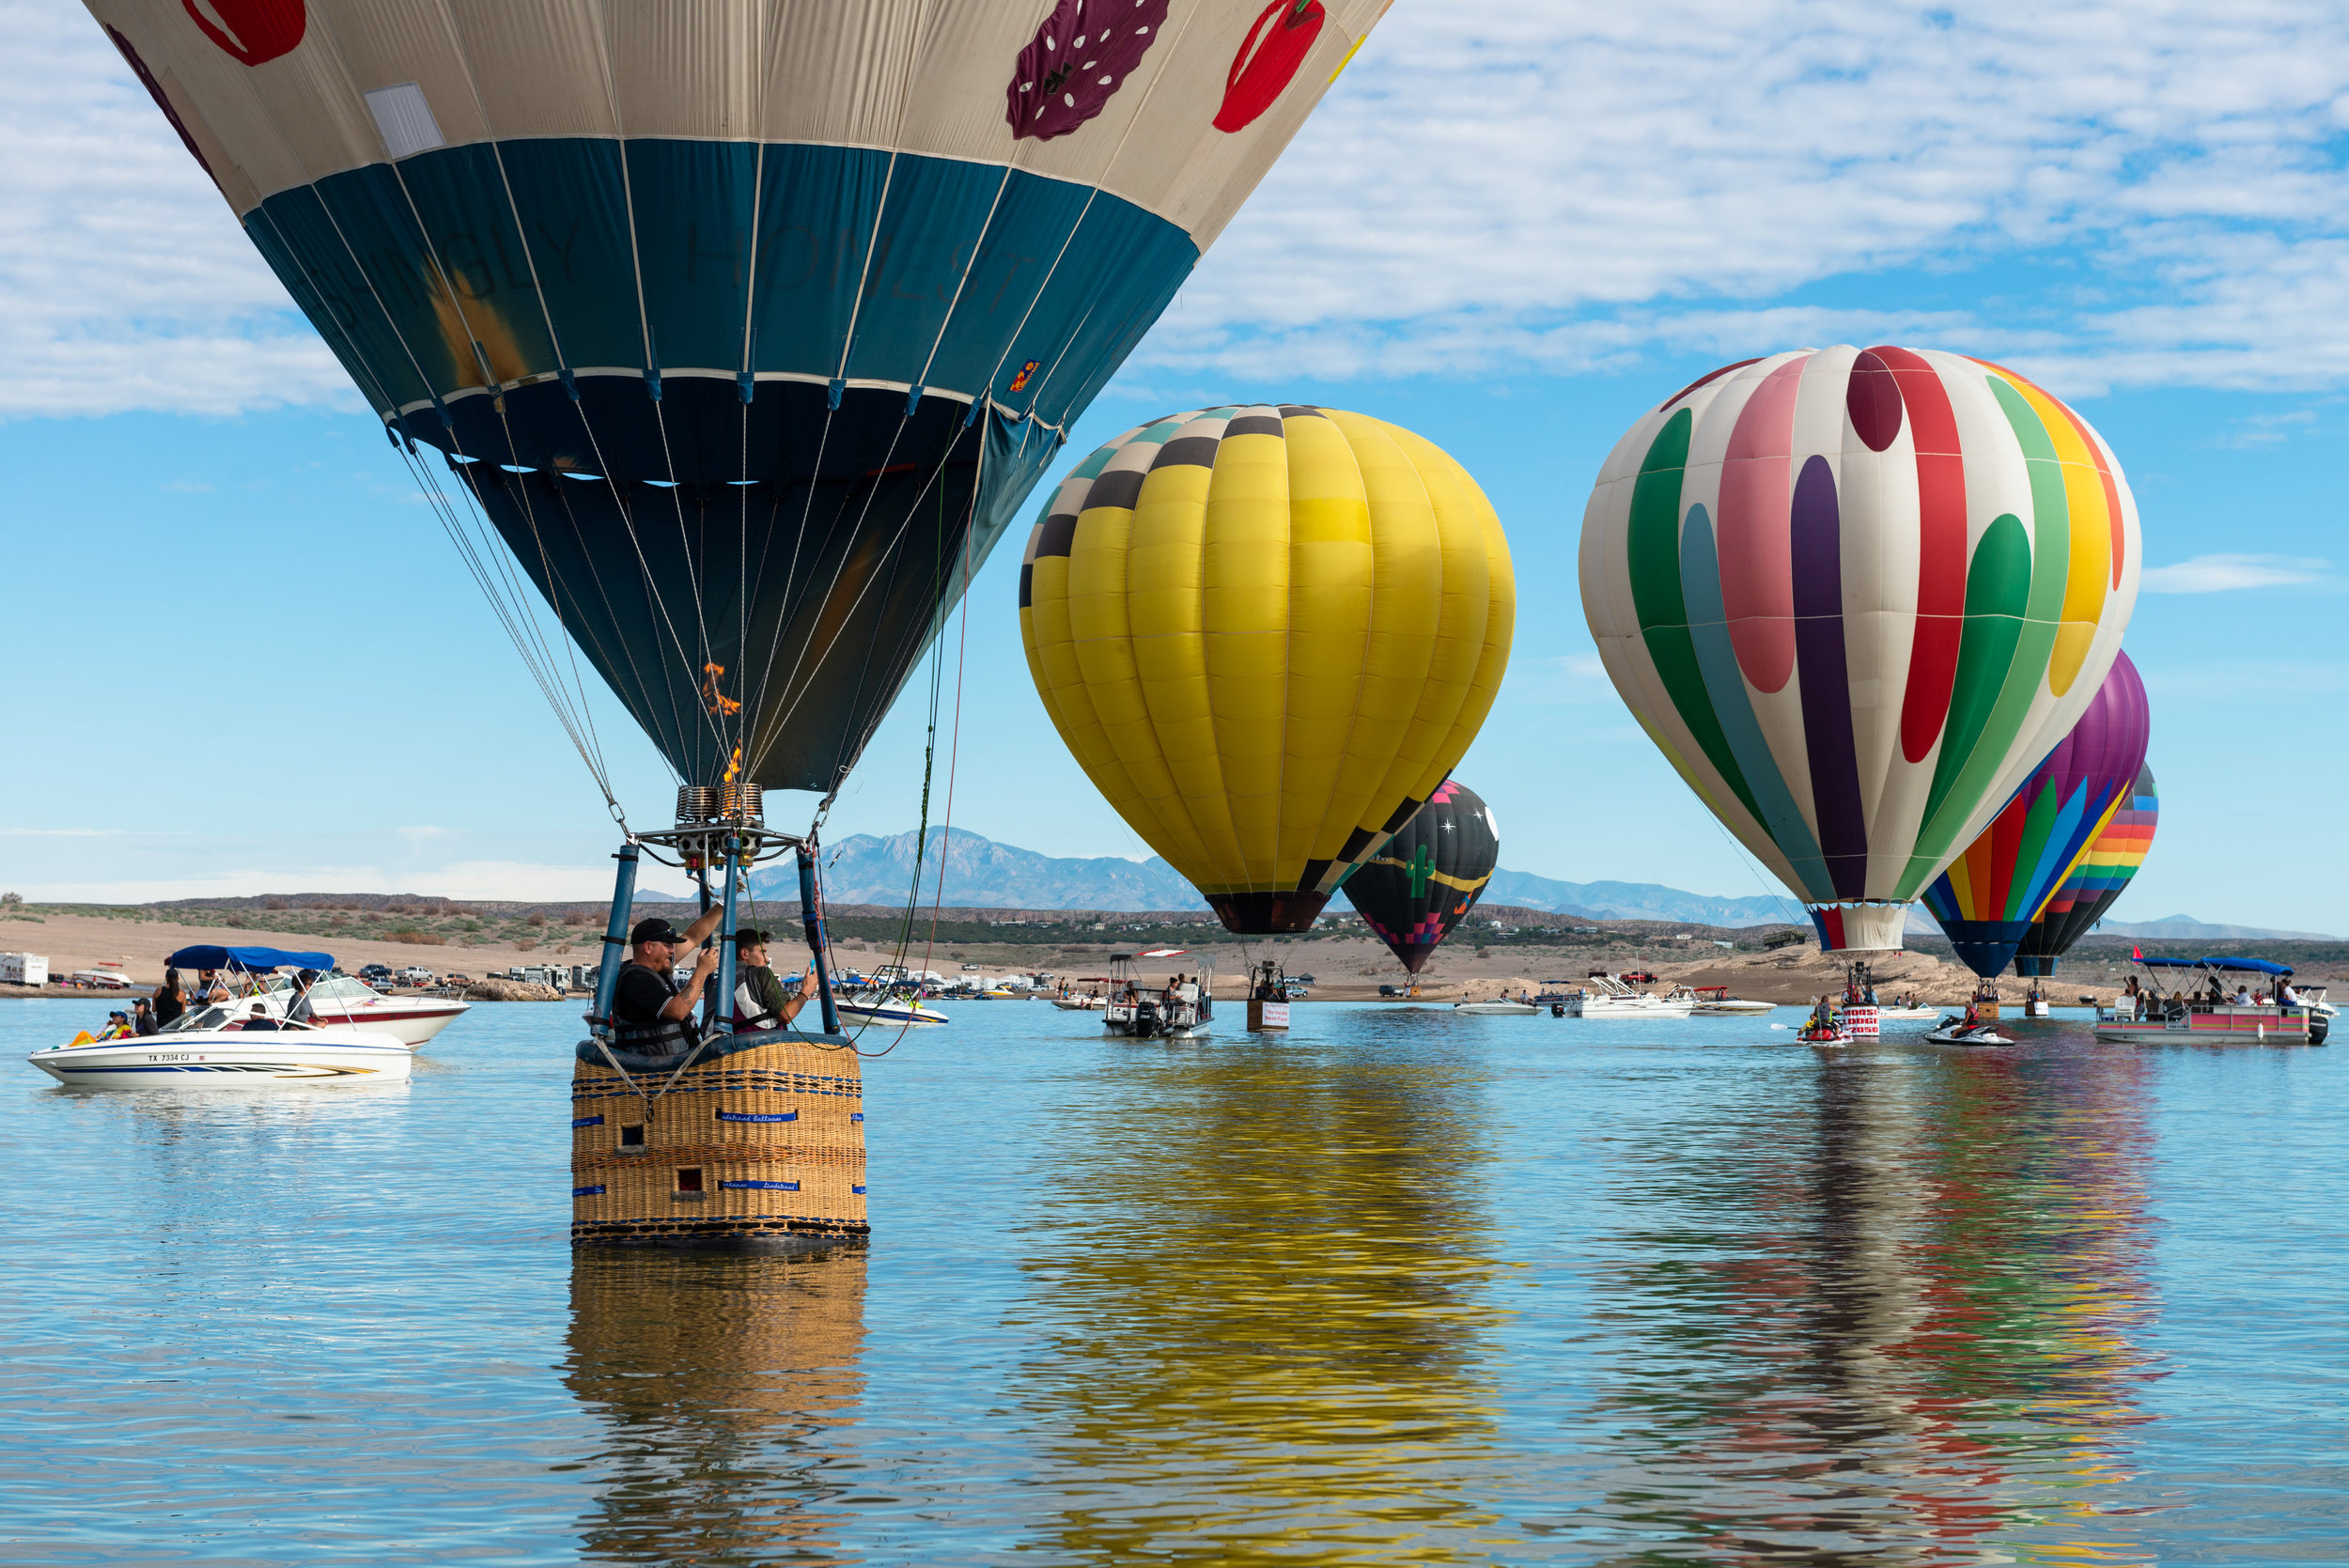 Elephant Butte Balloon Regatta - Elephant Butte, New Mexico